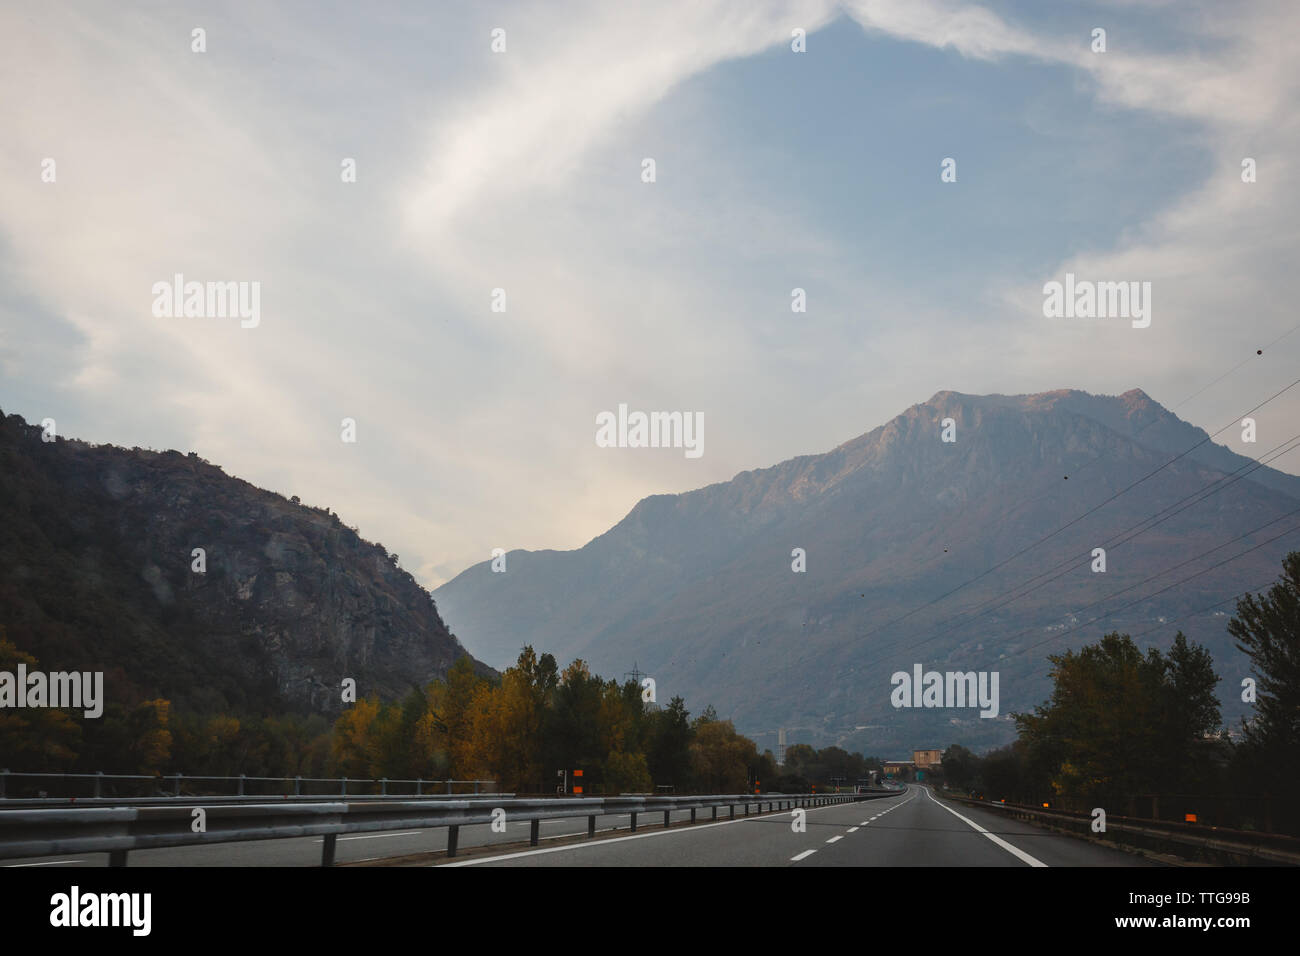 A deserted highway with mountains in the background and a dramatic sky - Stock Image